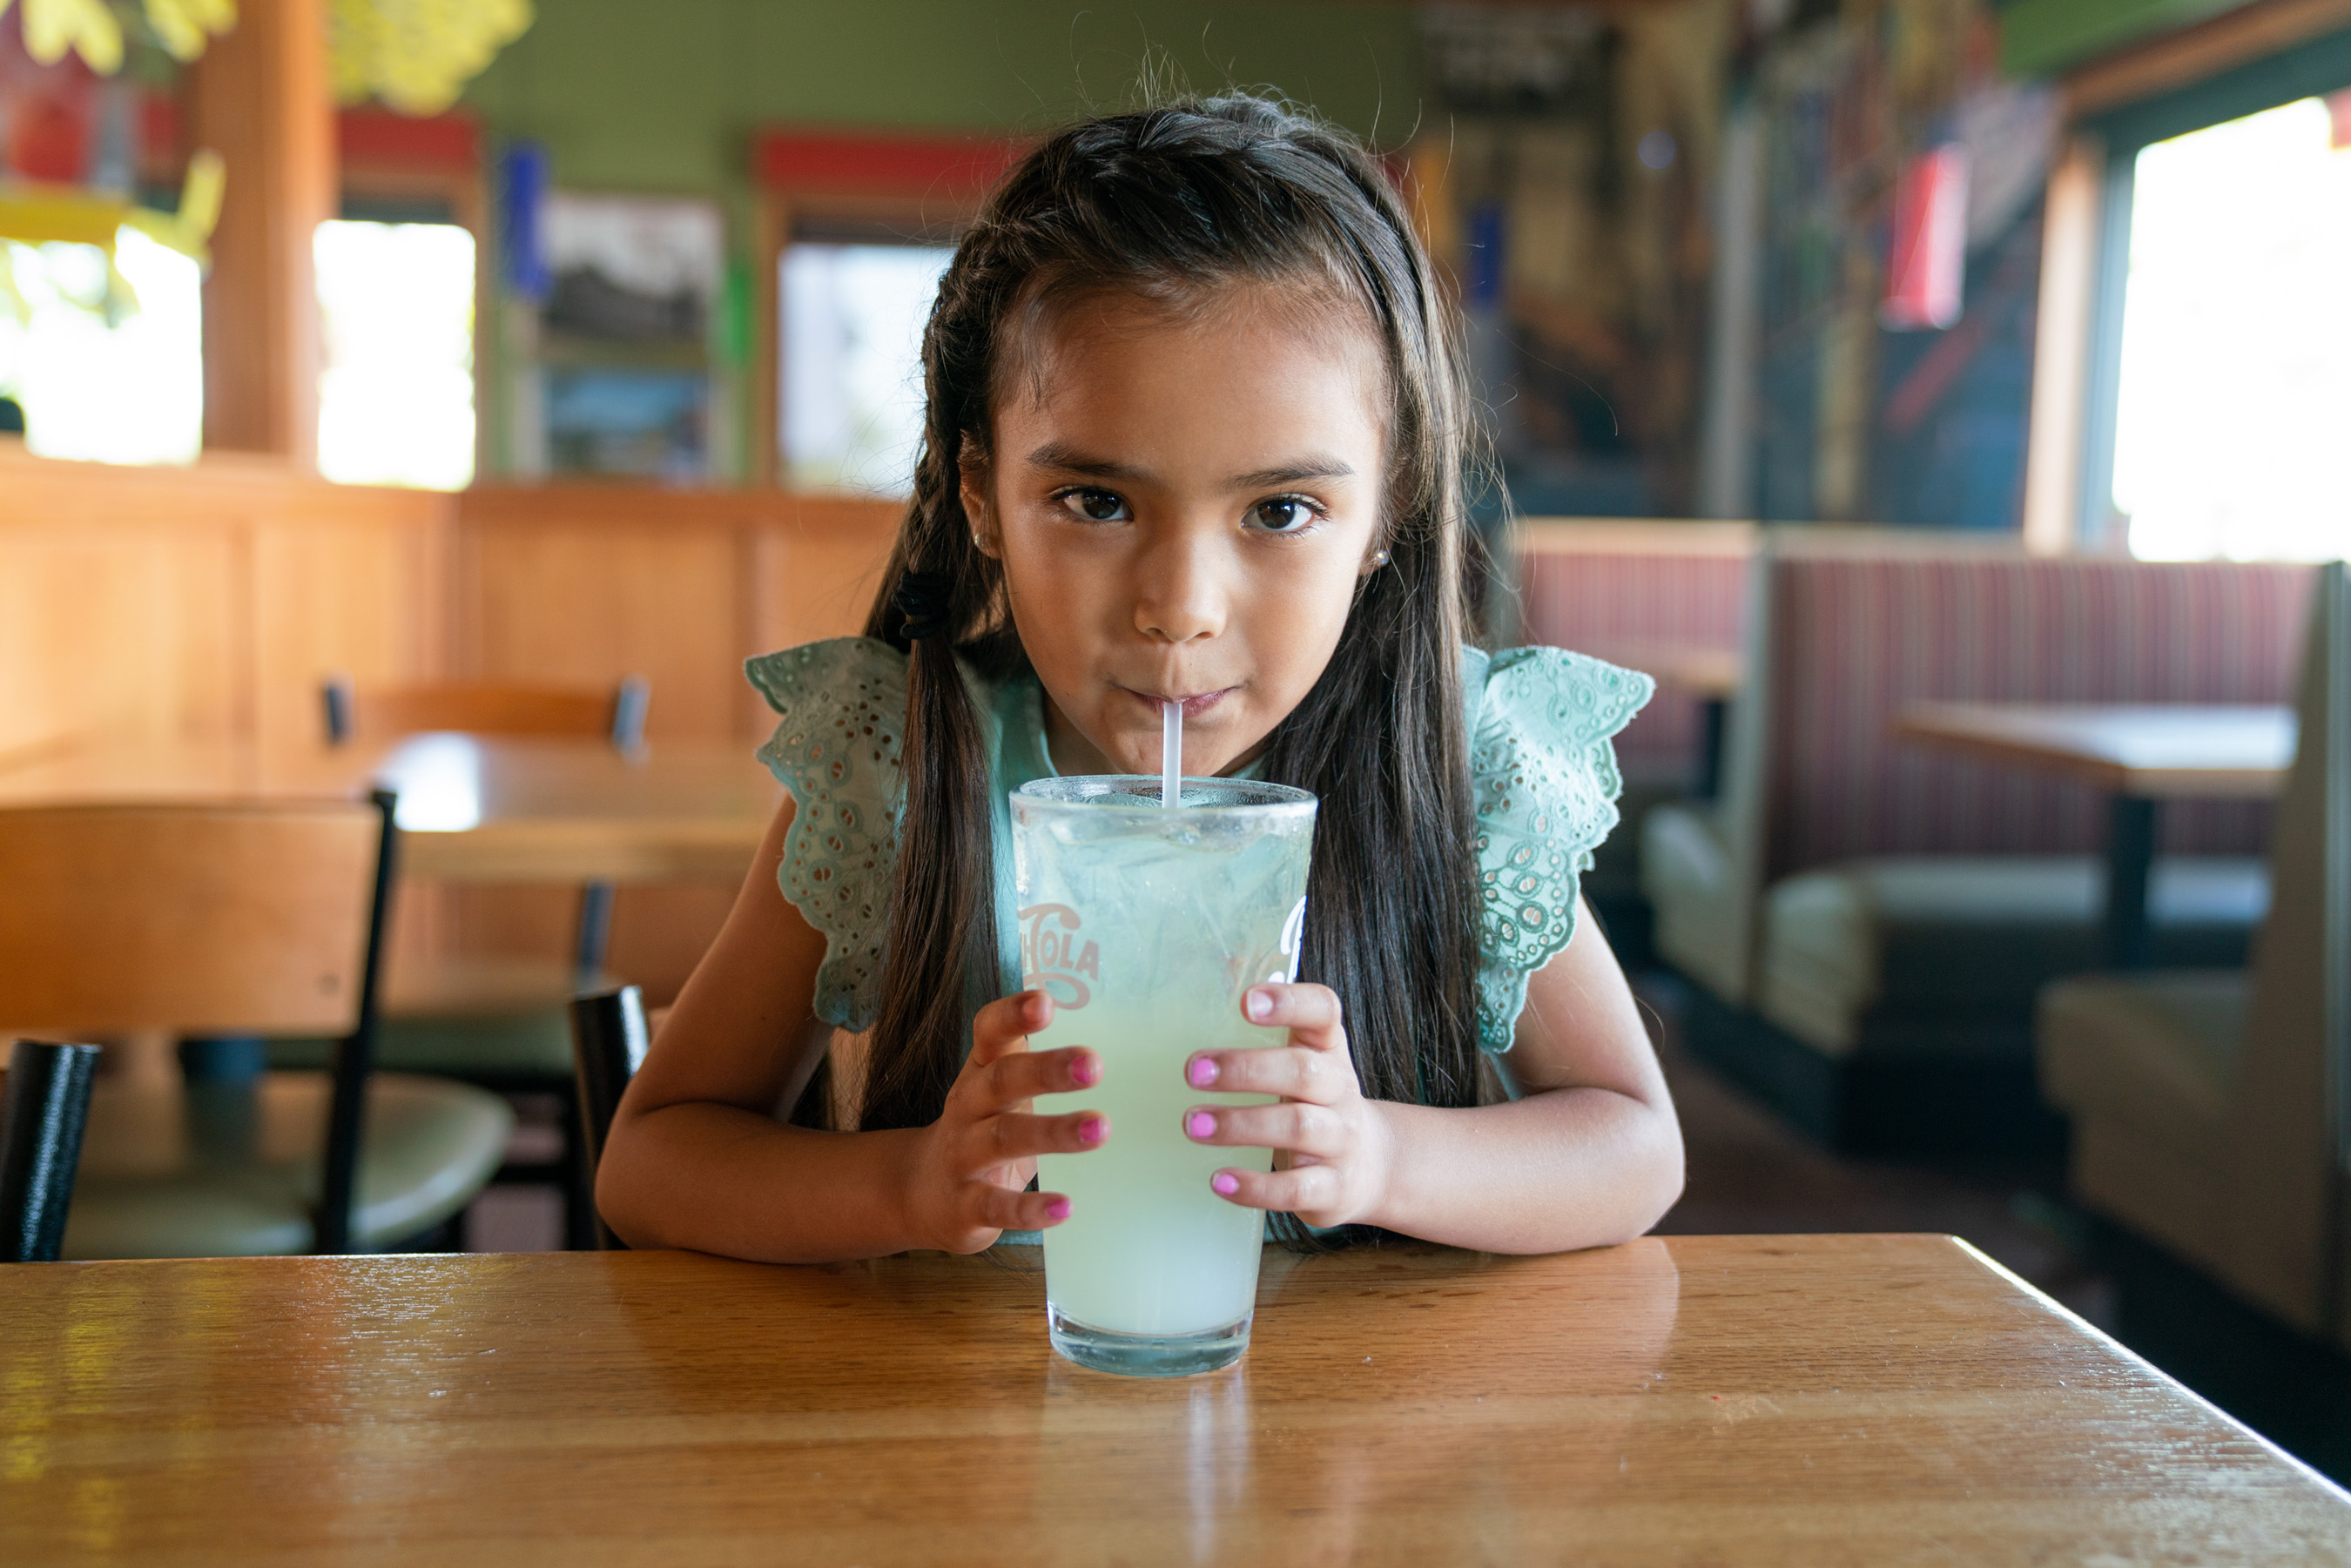 This is Applebee's 14th year supporting Alex's Lemonade Stand Foundation, which helps neighborhoods and communities impacted by pediatric cancer.